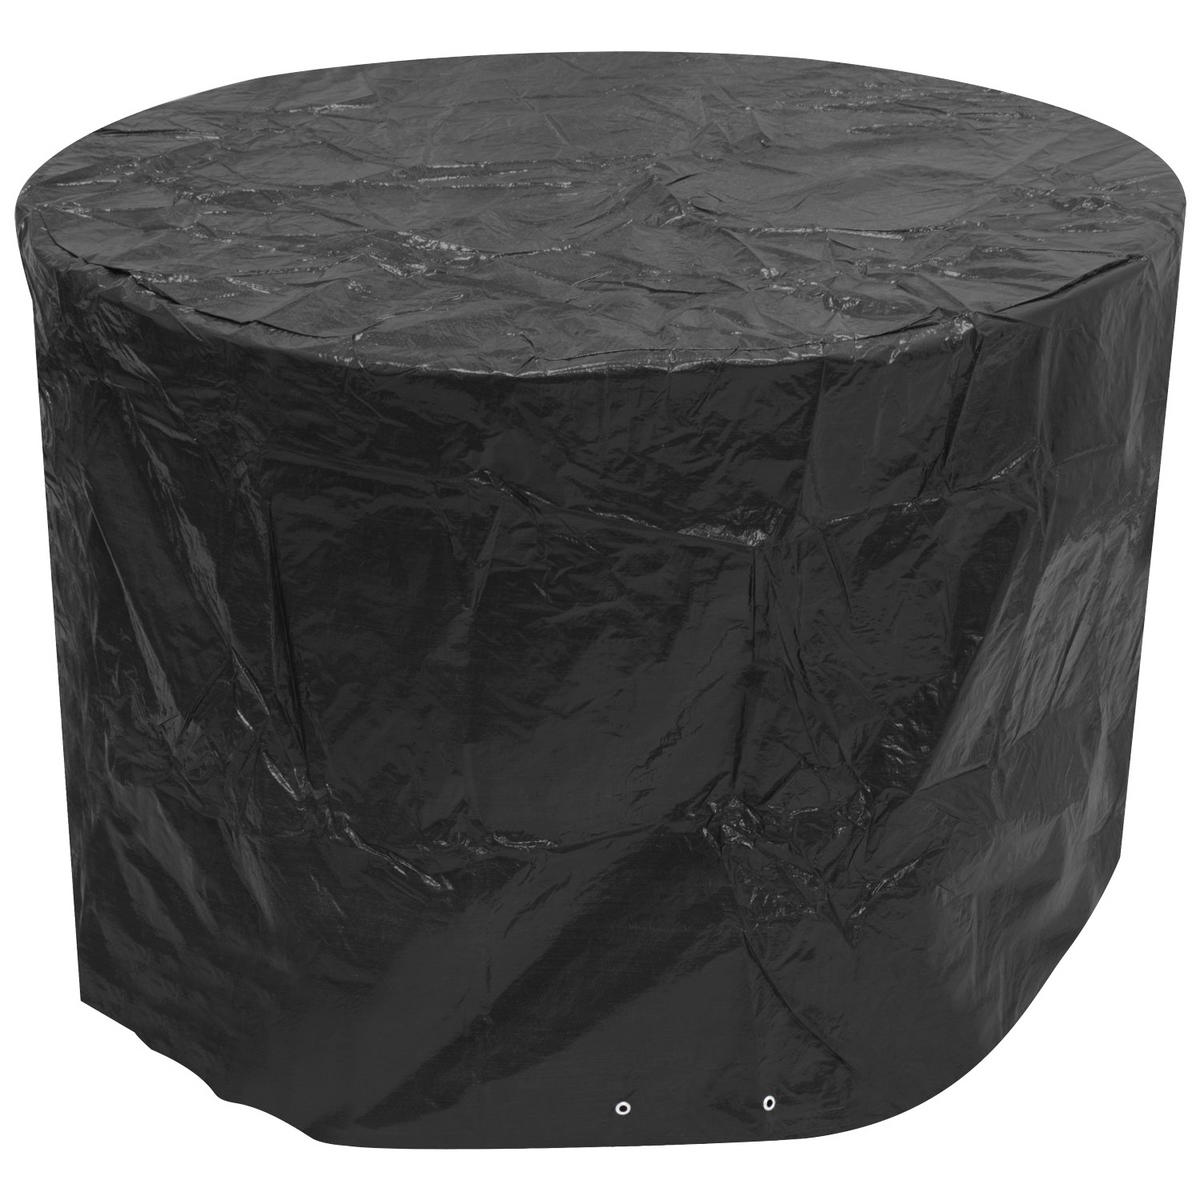 garden chair covers the range adirondack and ottoman set woodside small round patio cover black